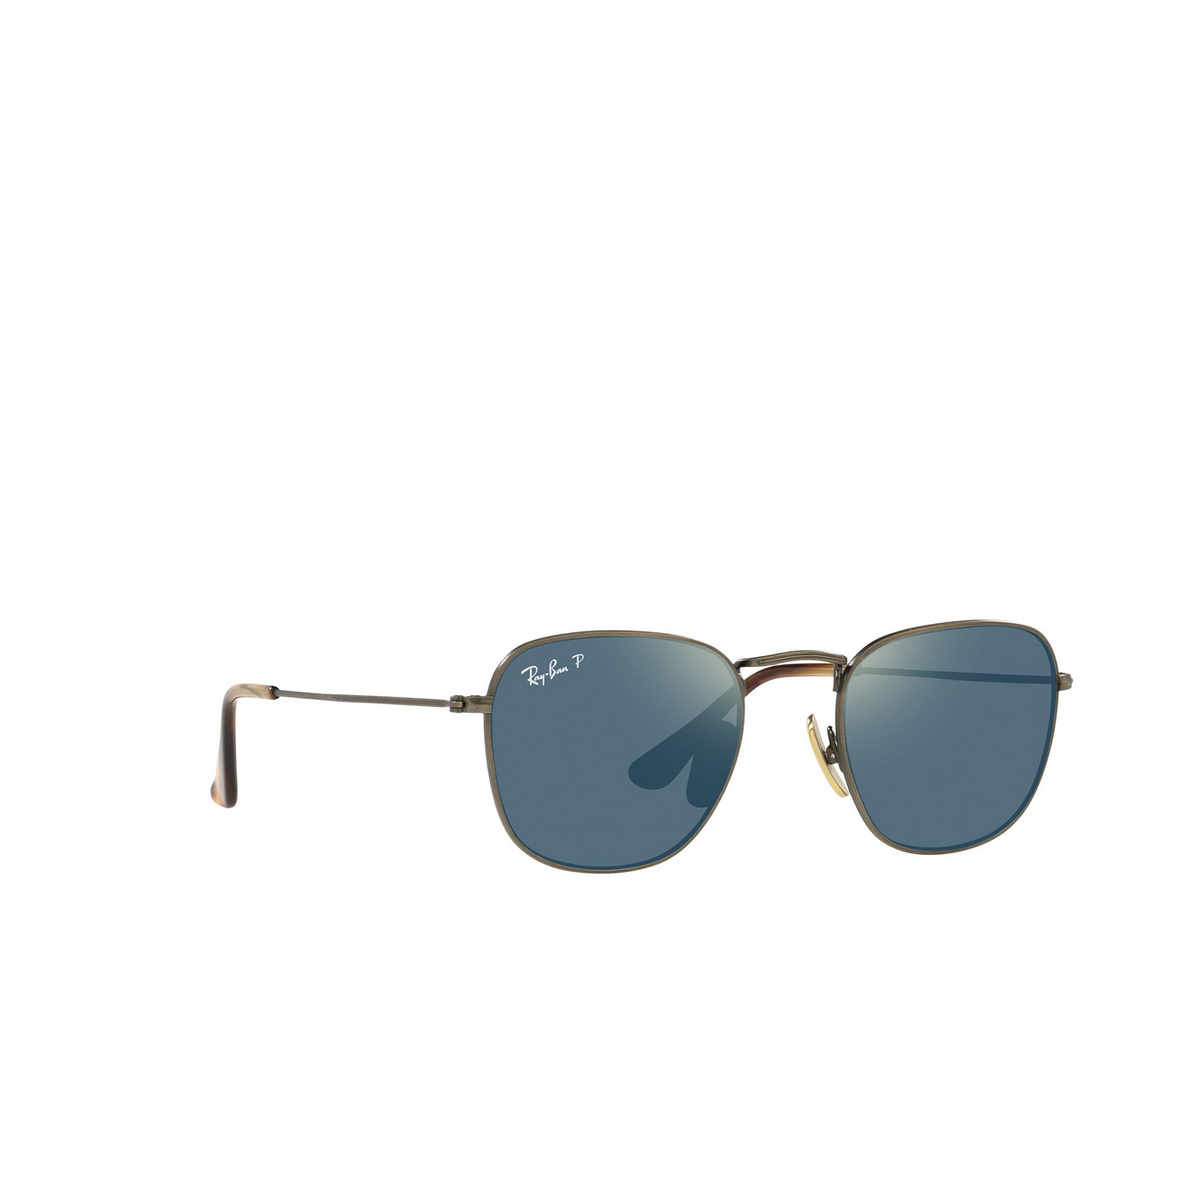 Ray-Ban® Square Sunglasses: Frank RB8157 color Demigloss Antique Gold 9207T0 - three-quarters view.